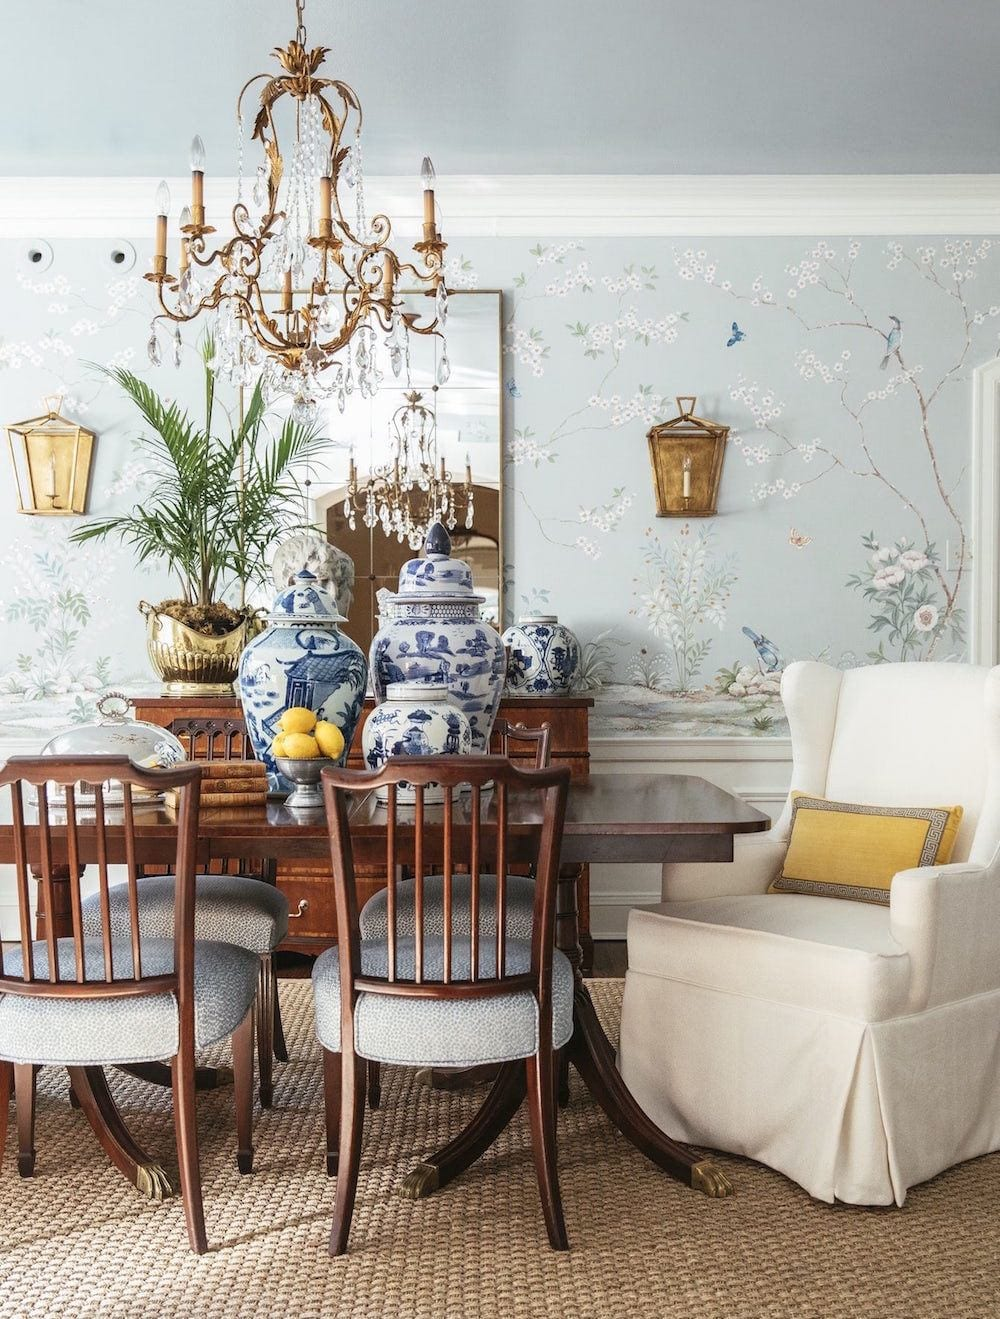 Regency style dining room with light blue chinoiserie wallpaper and gold accents